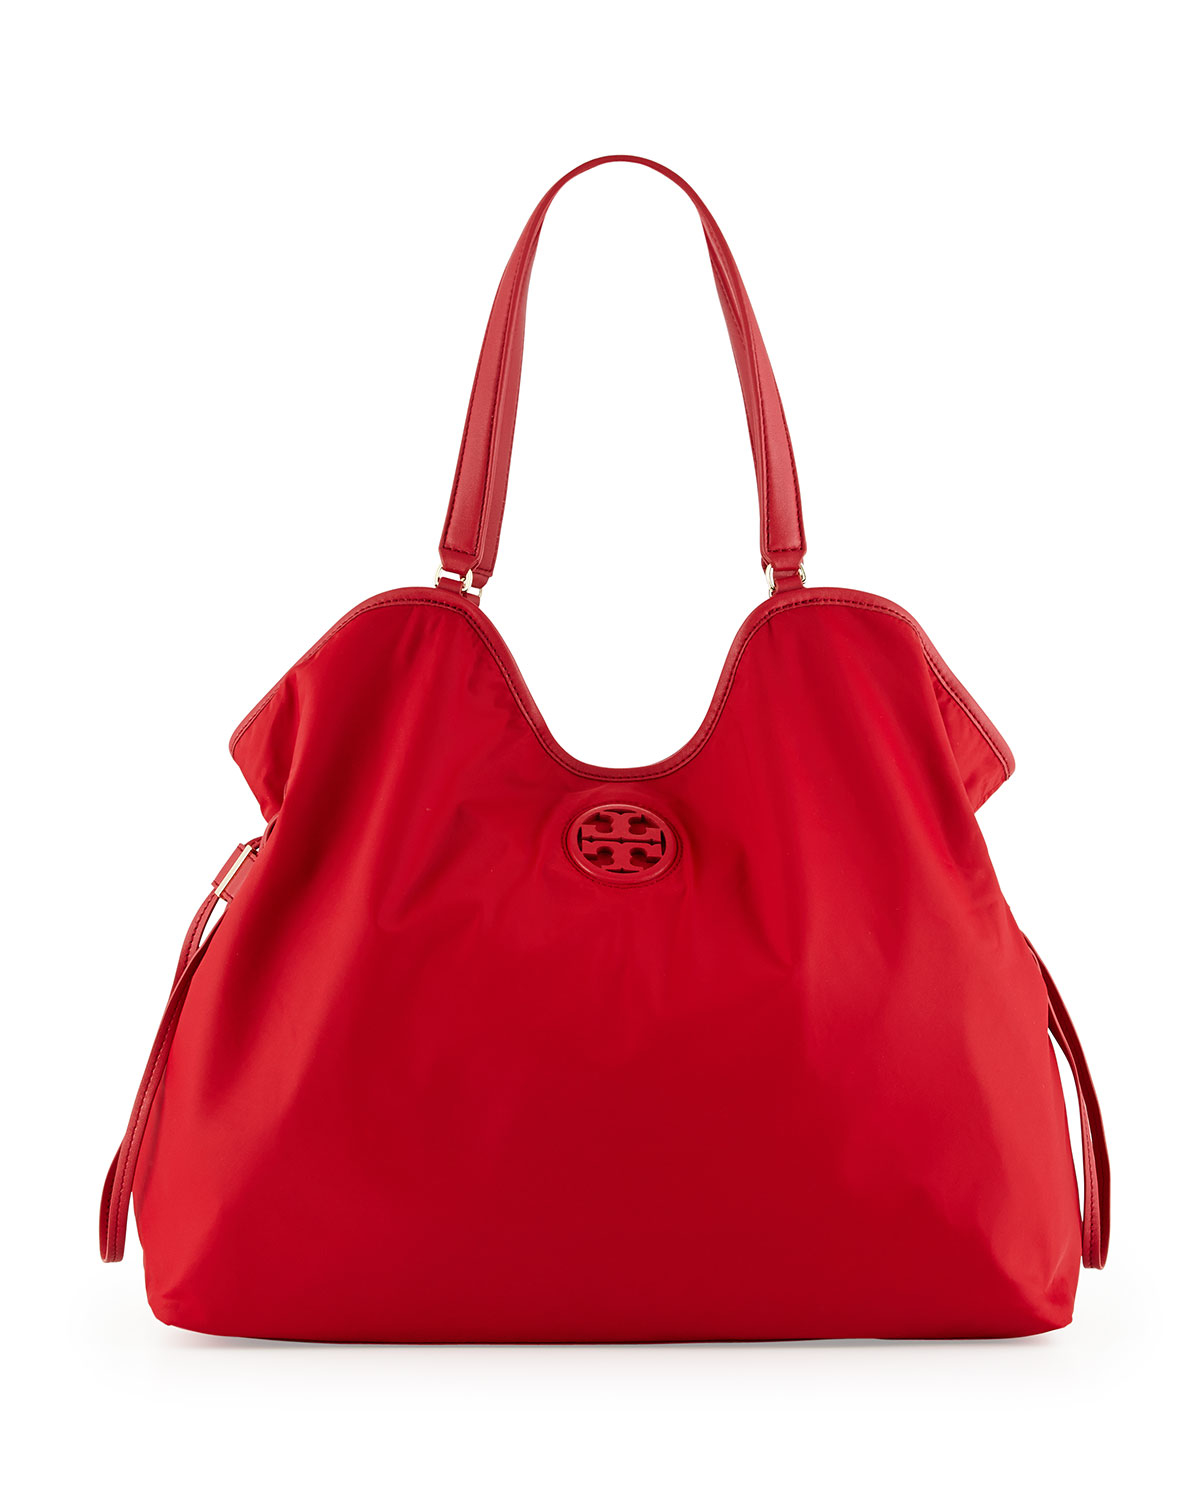 c22f6cfe72e Lyst - Tory Burch Nylon Slouchy Tote Bag in Red